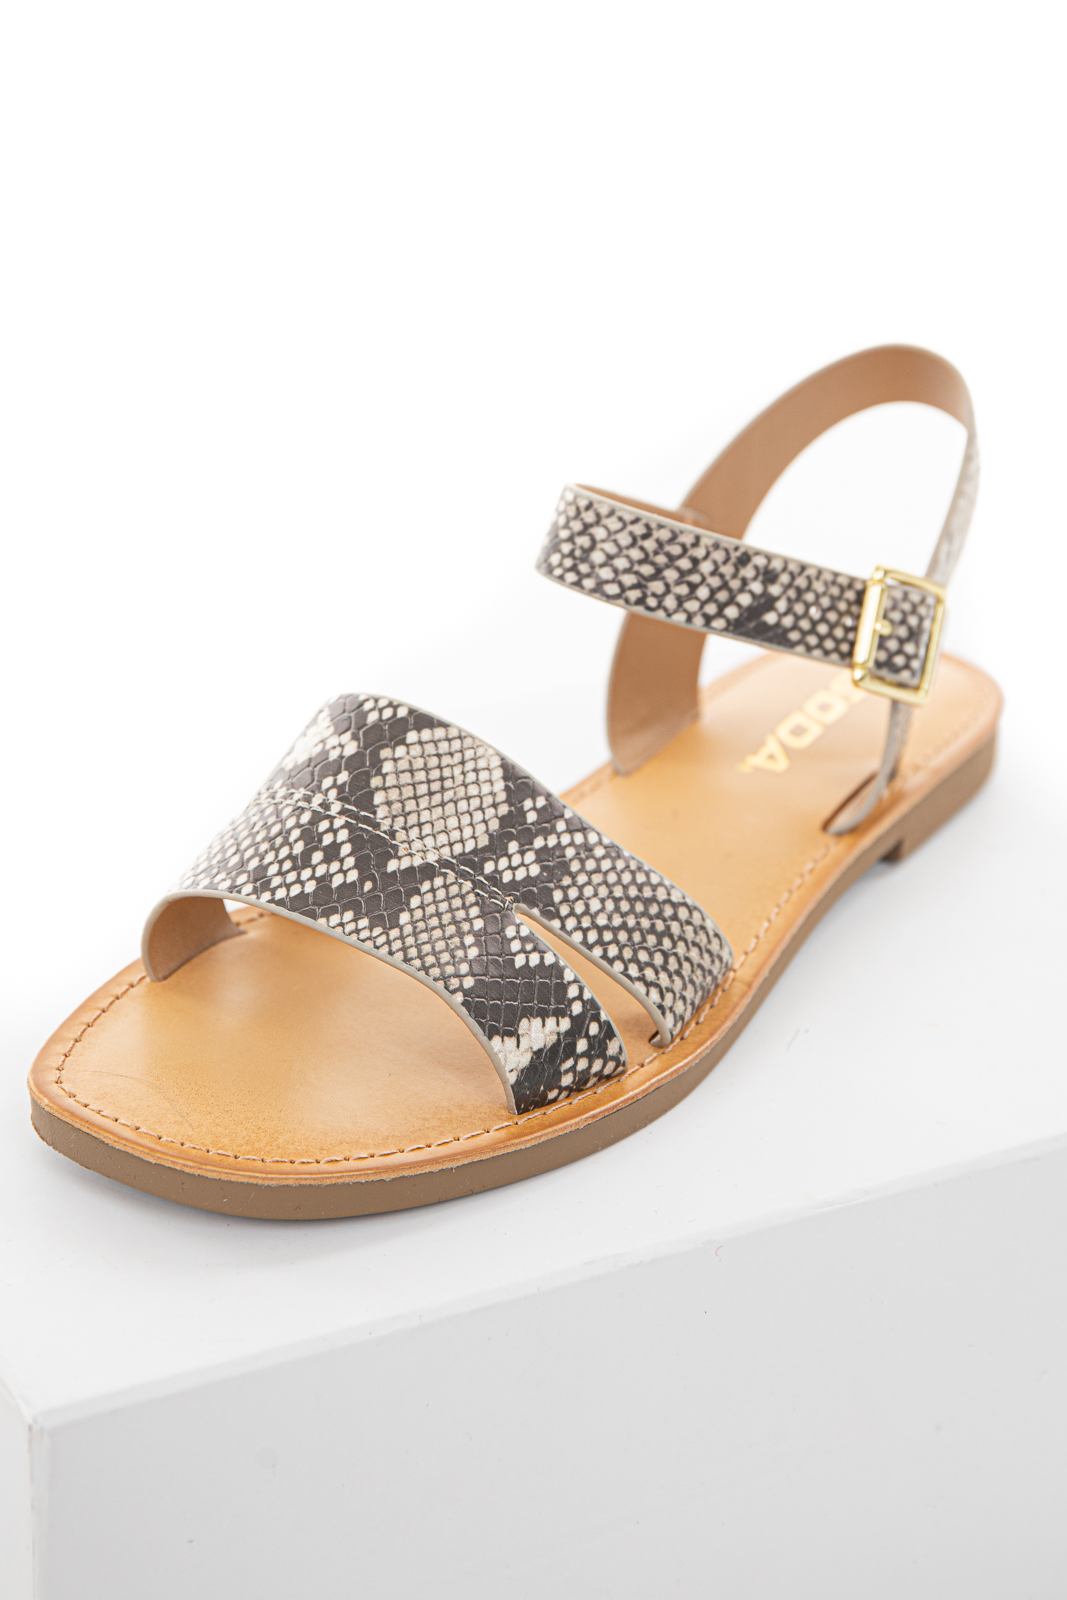 Taupe Snakeskin Print Textured Strappy Sandal